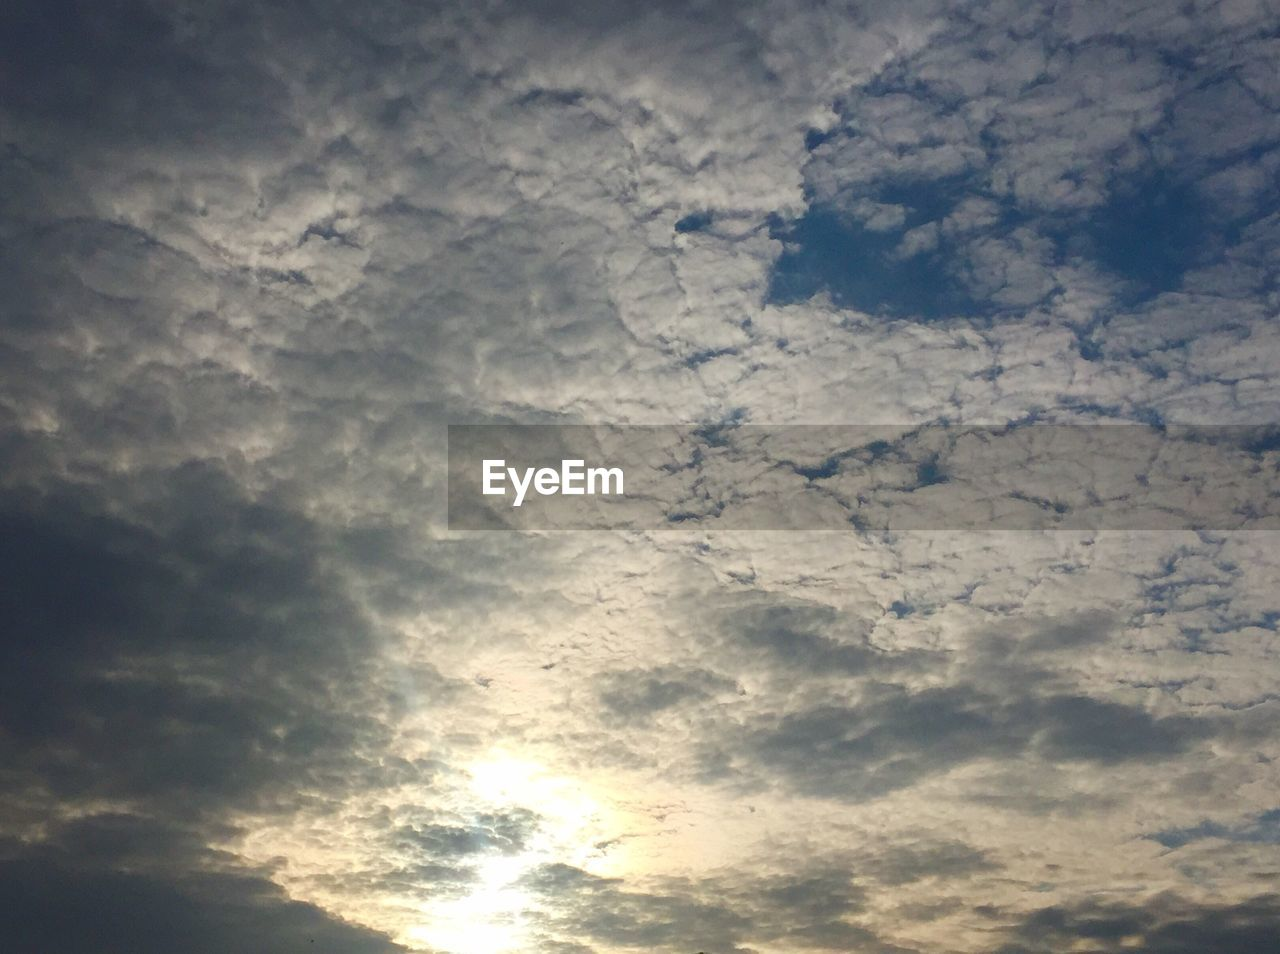 cloud - sky, nature, beauty in nature, low angle view, sky, backgrounds, no people, sky only, scenics, tranquility, outdoors, sunset, day